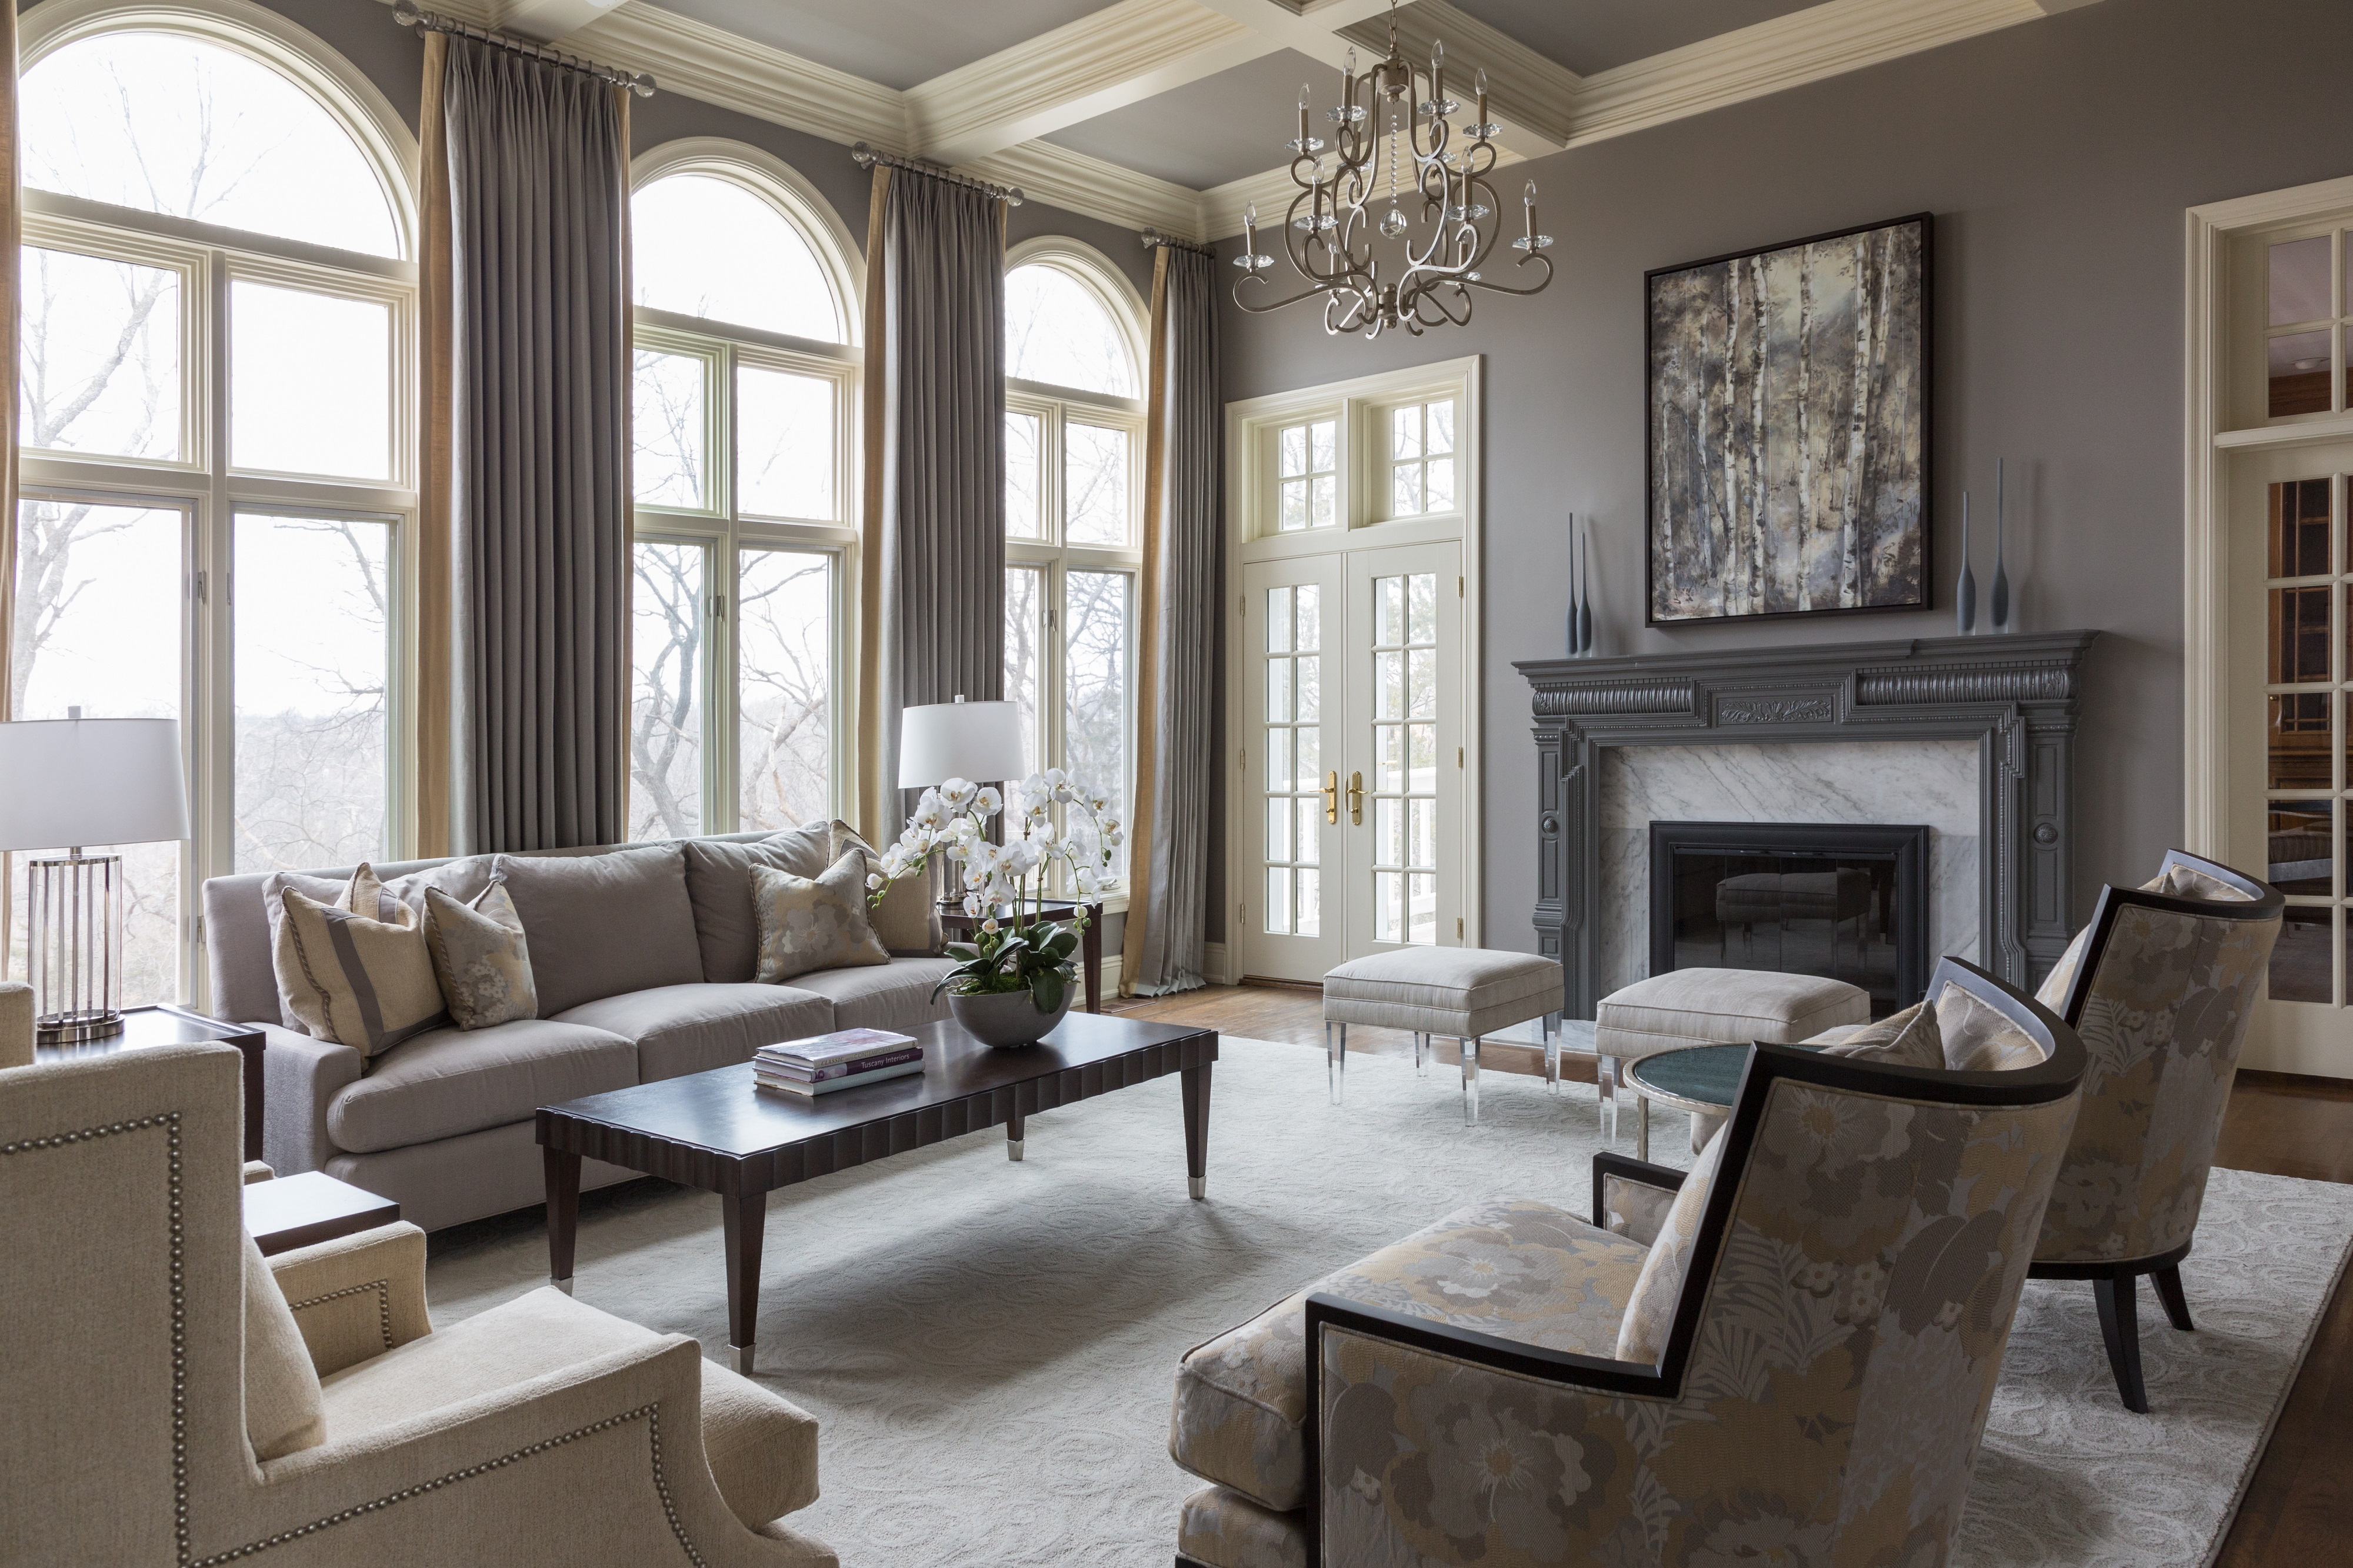 Formal living room update a design connection inc for Latest interior design trends for living rooms